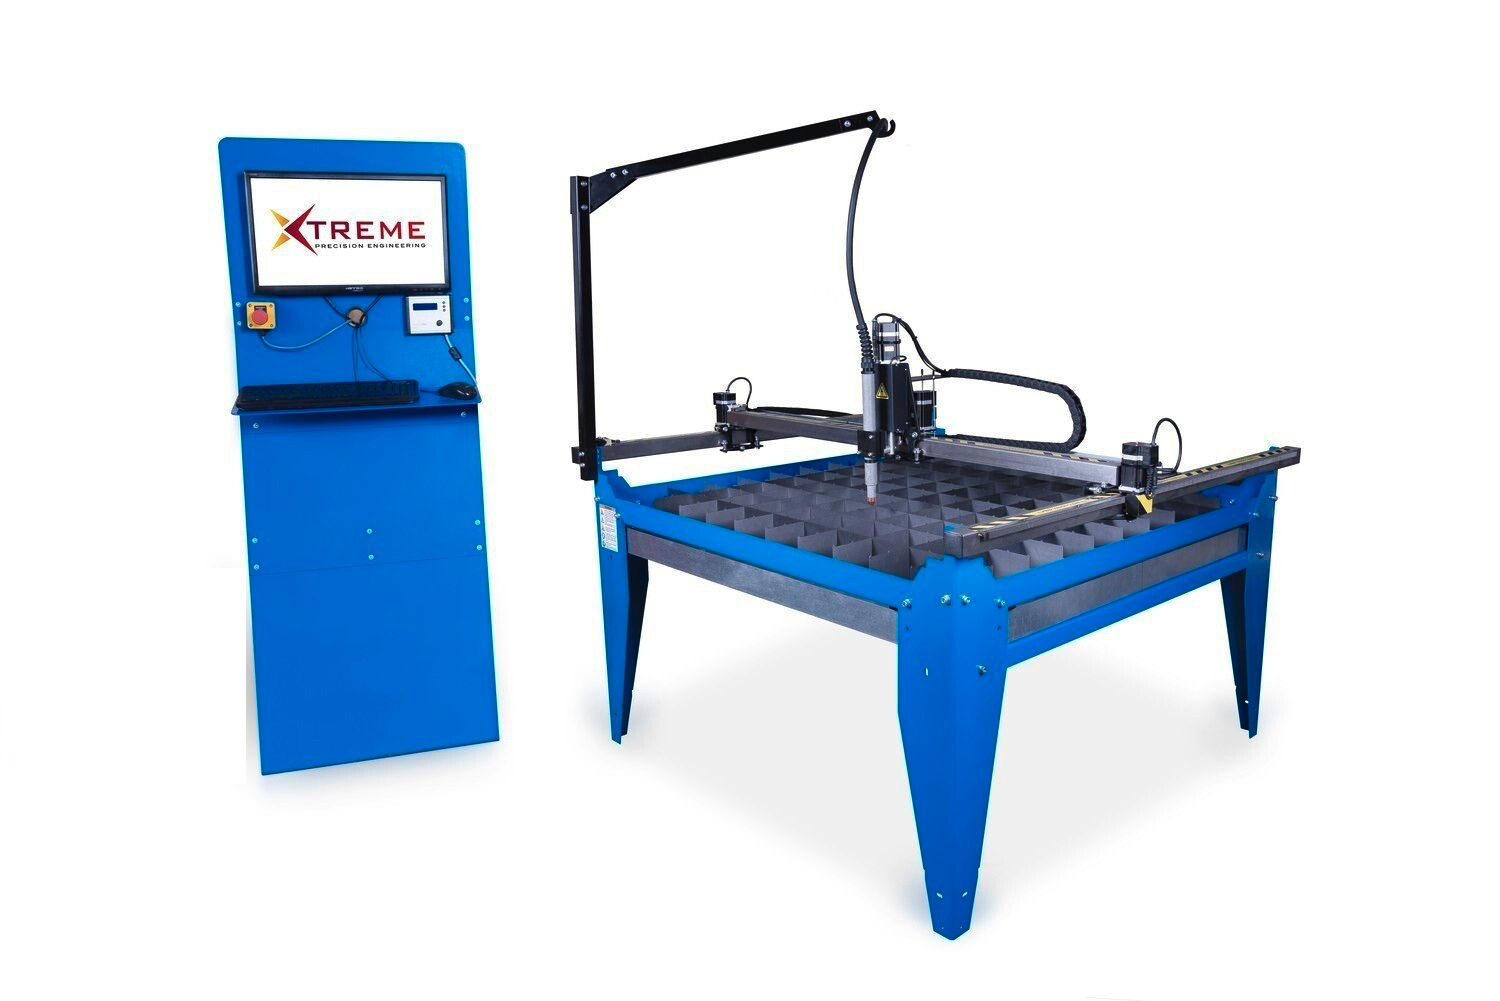 4x4 CNC Complete Plasma Cutting Table Kit  without plasma cutter